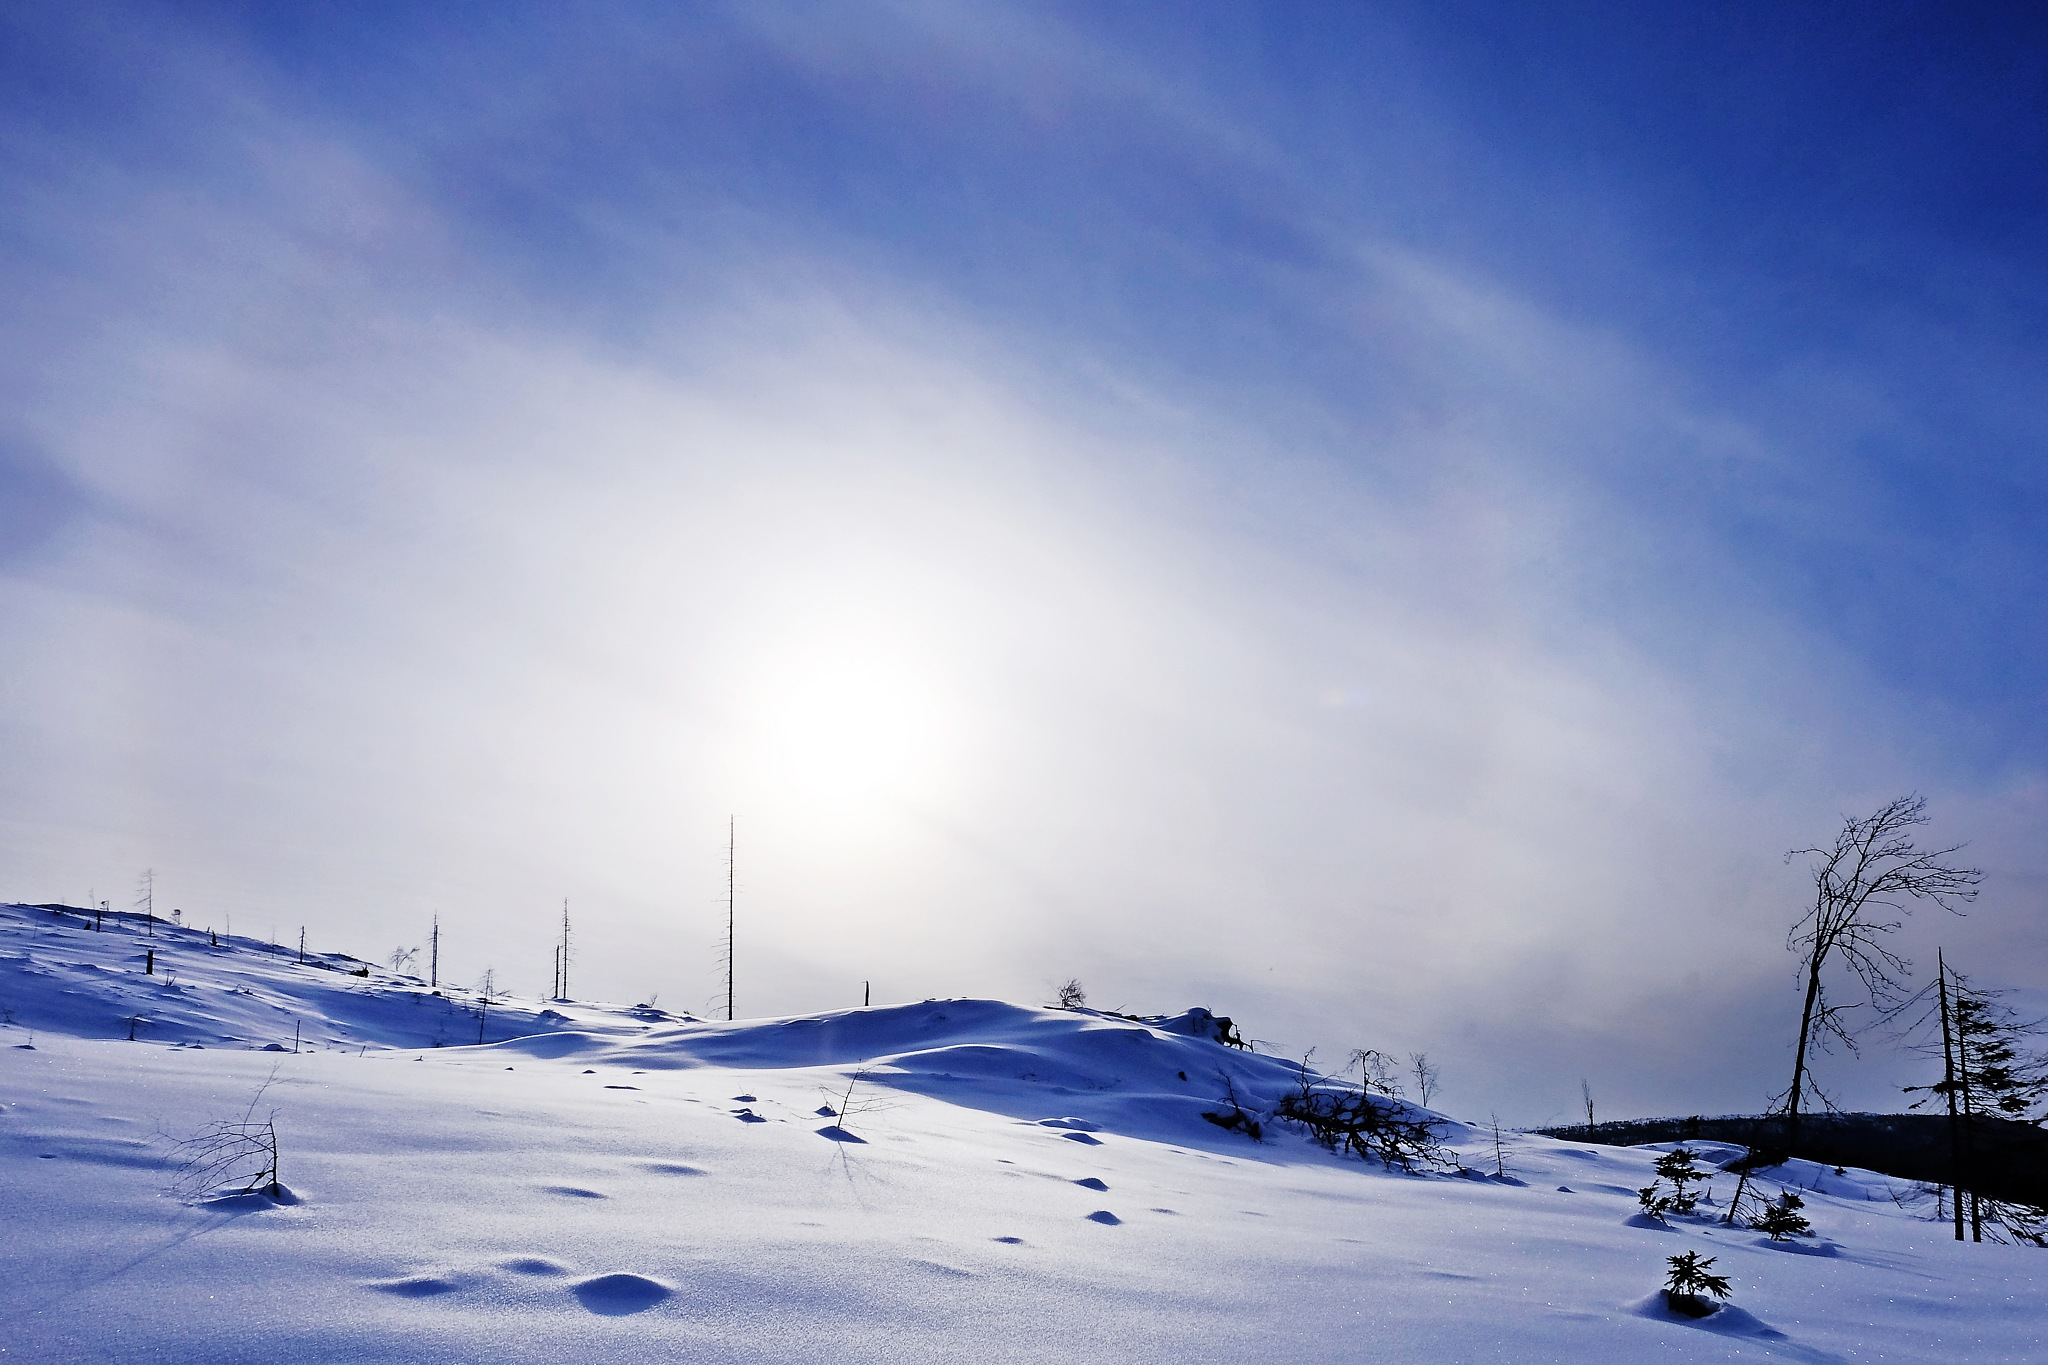 Winter Halo by Jan Arvid Solem